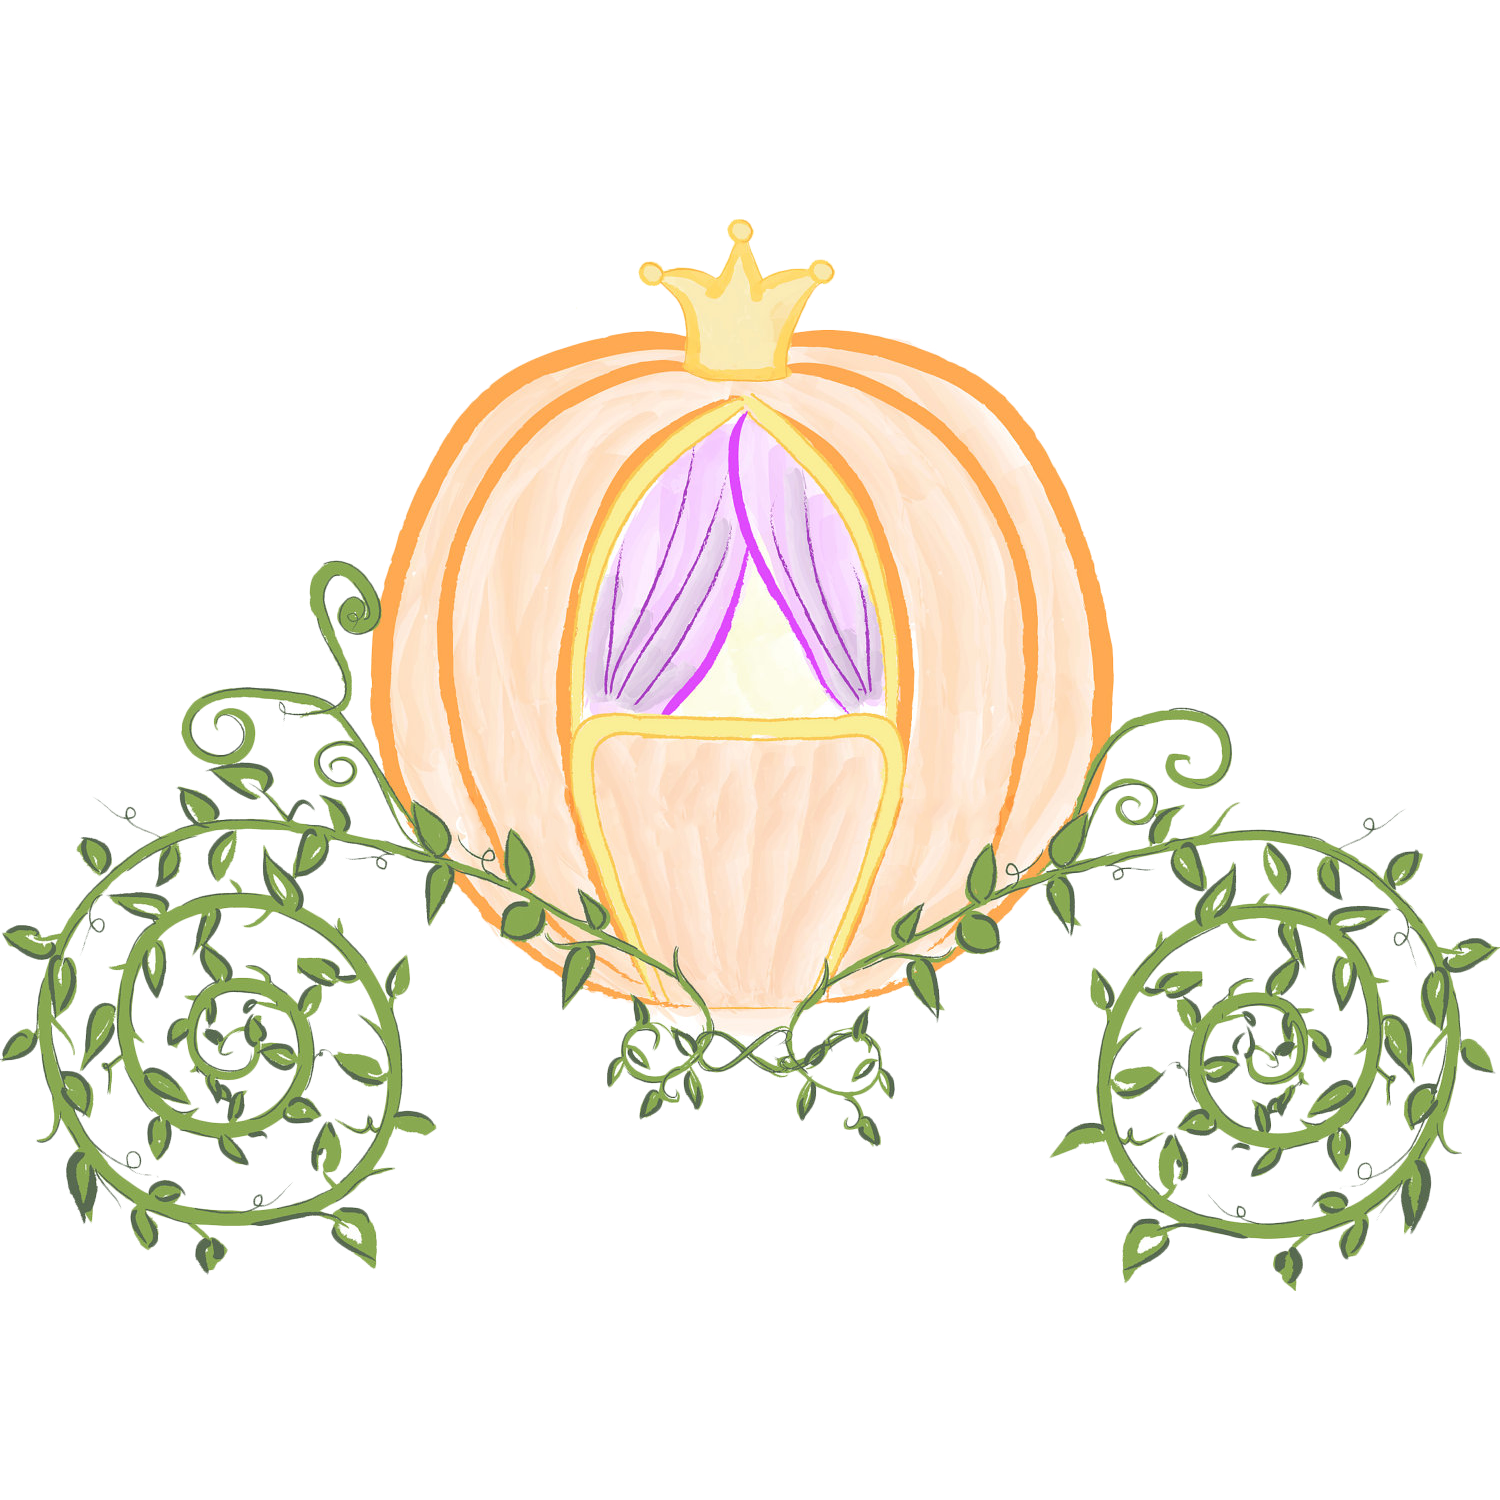 Cart drawing cinderella. Prince charming pumpkin carriage